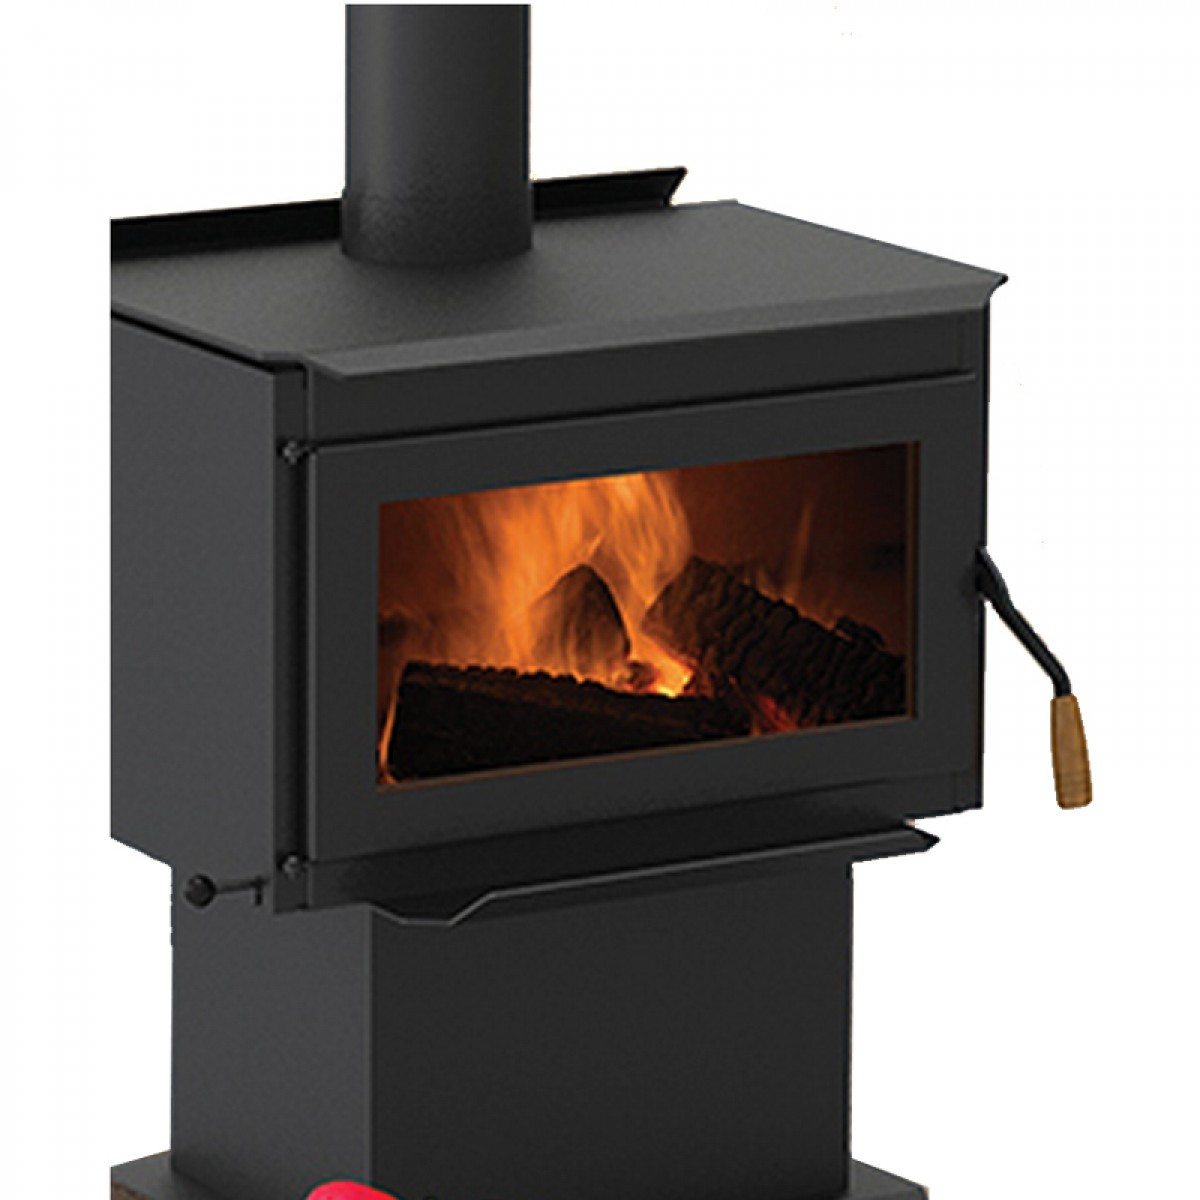 Ihp Superior Wxs2021 Wood Burning Stove Body